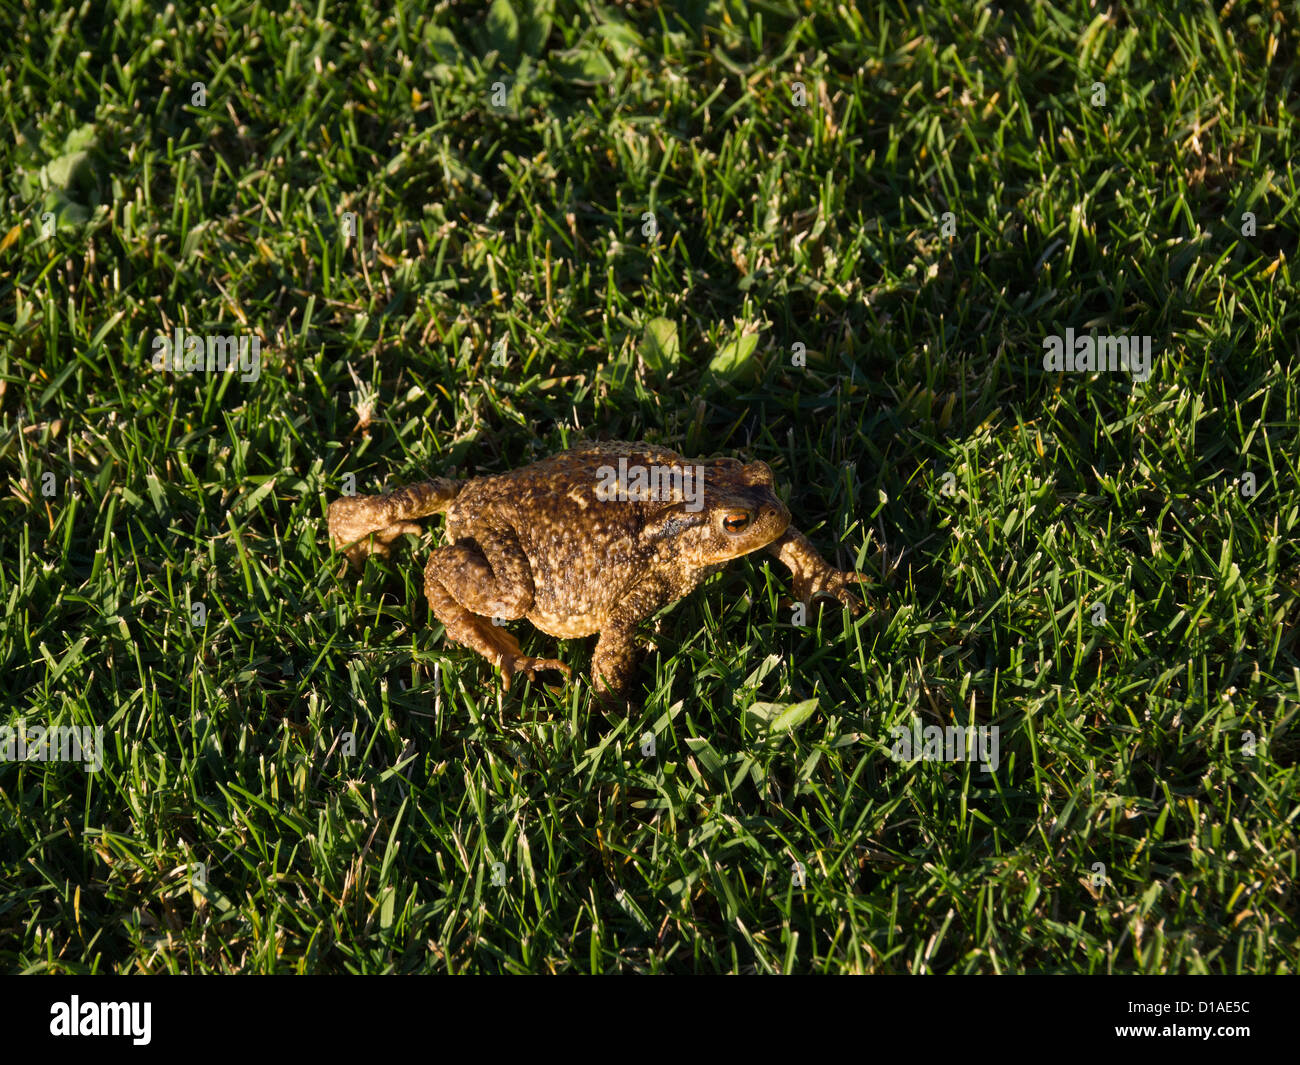 European common toad (bufo bufo ssp spinosus) on grass Stock Photo